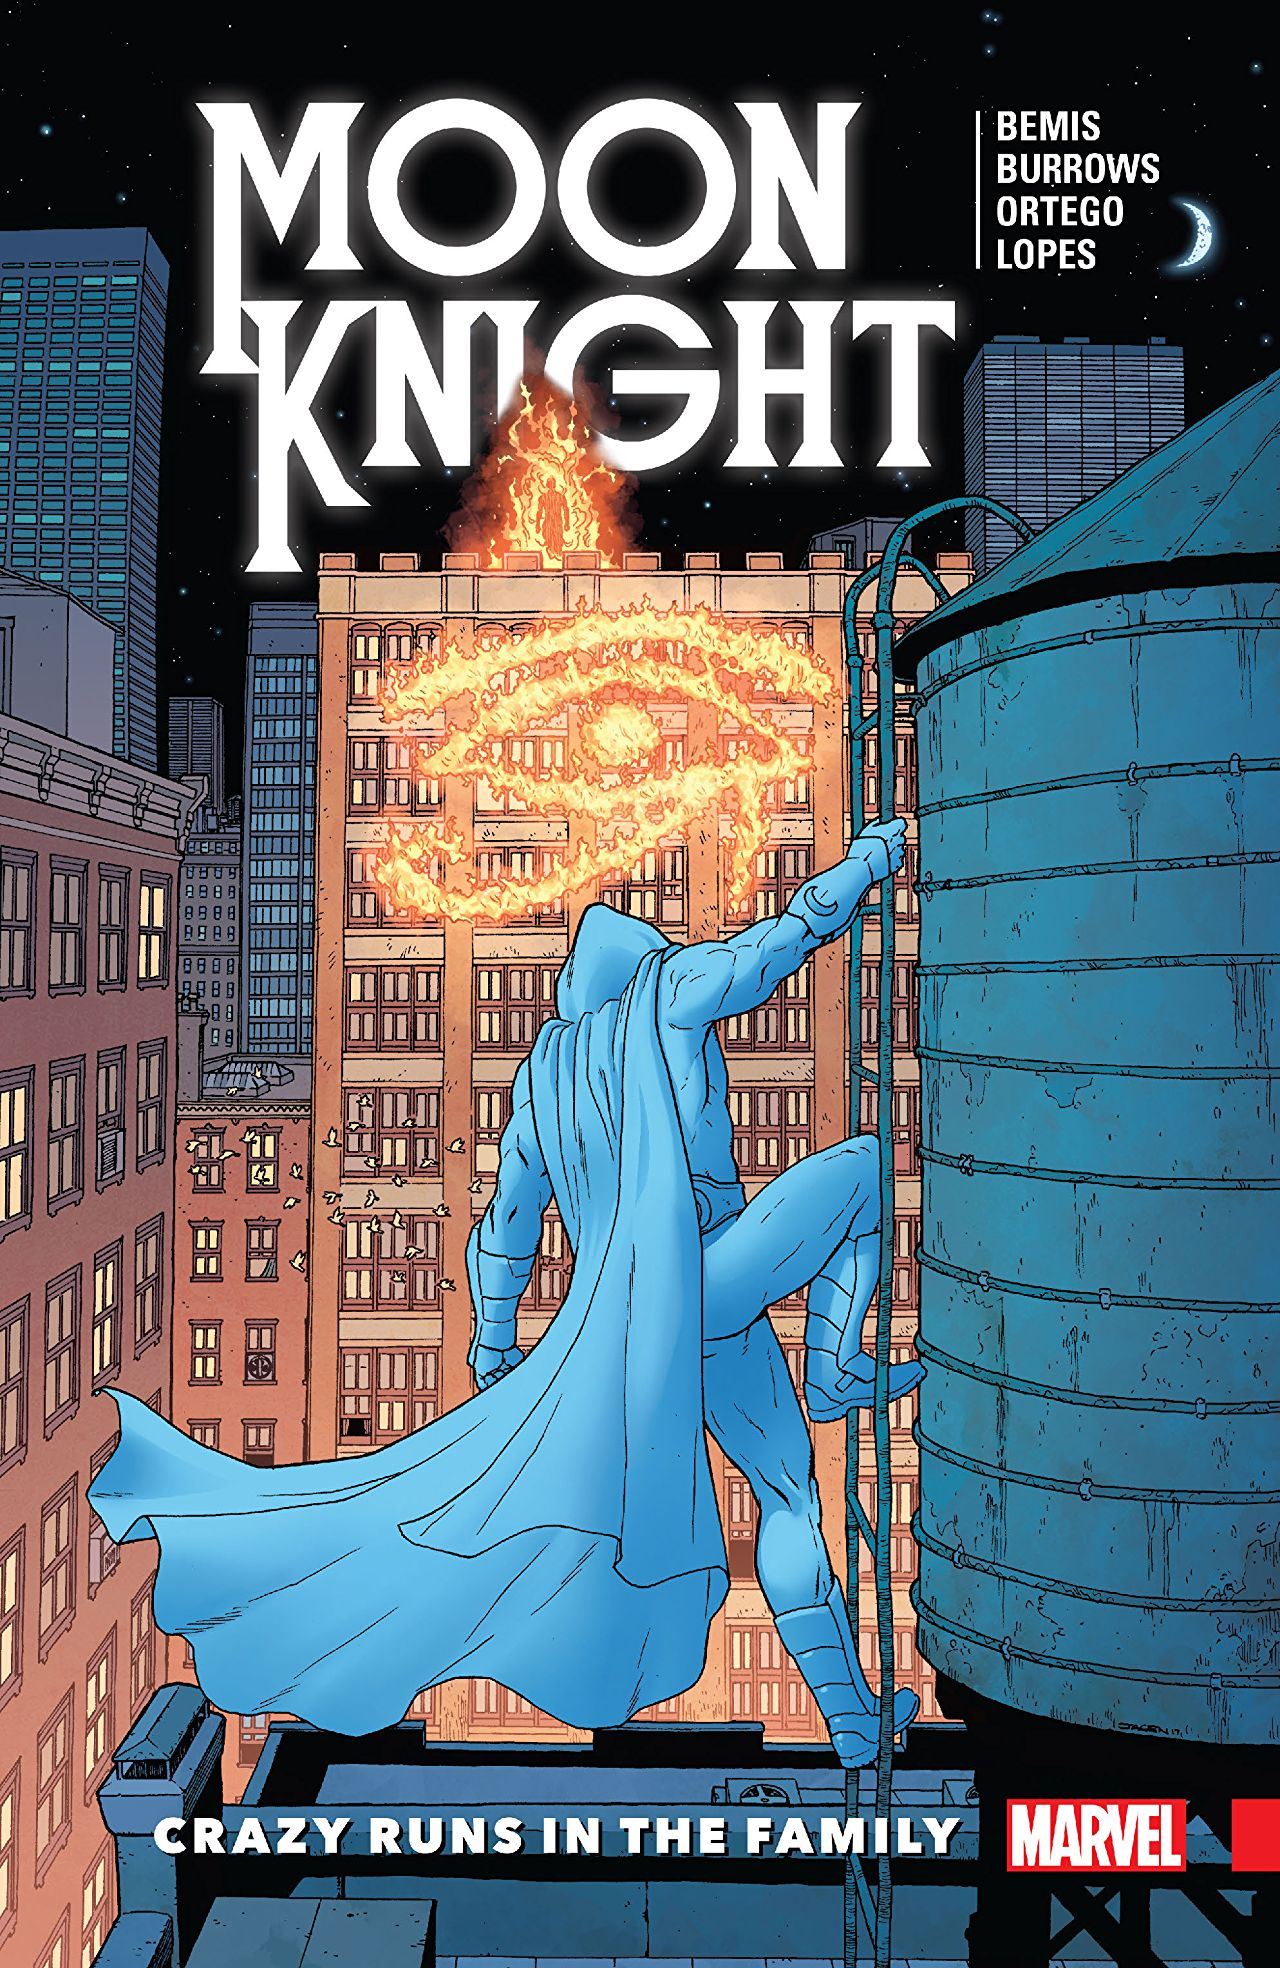 'Moon Knight: Legacy Vol. 1: Crazy Runs In The Family' review: A thought-provoking page turner